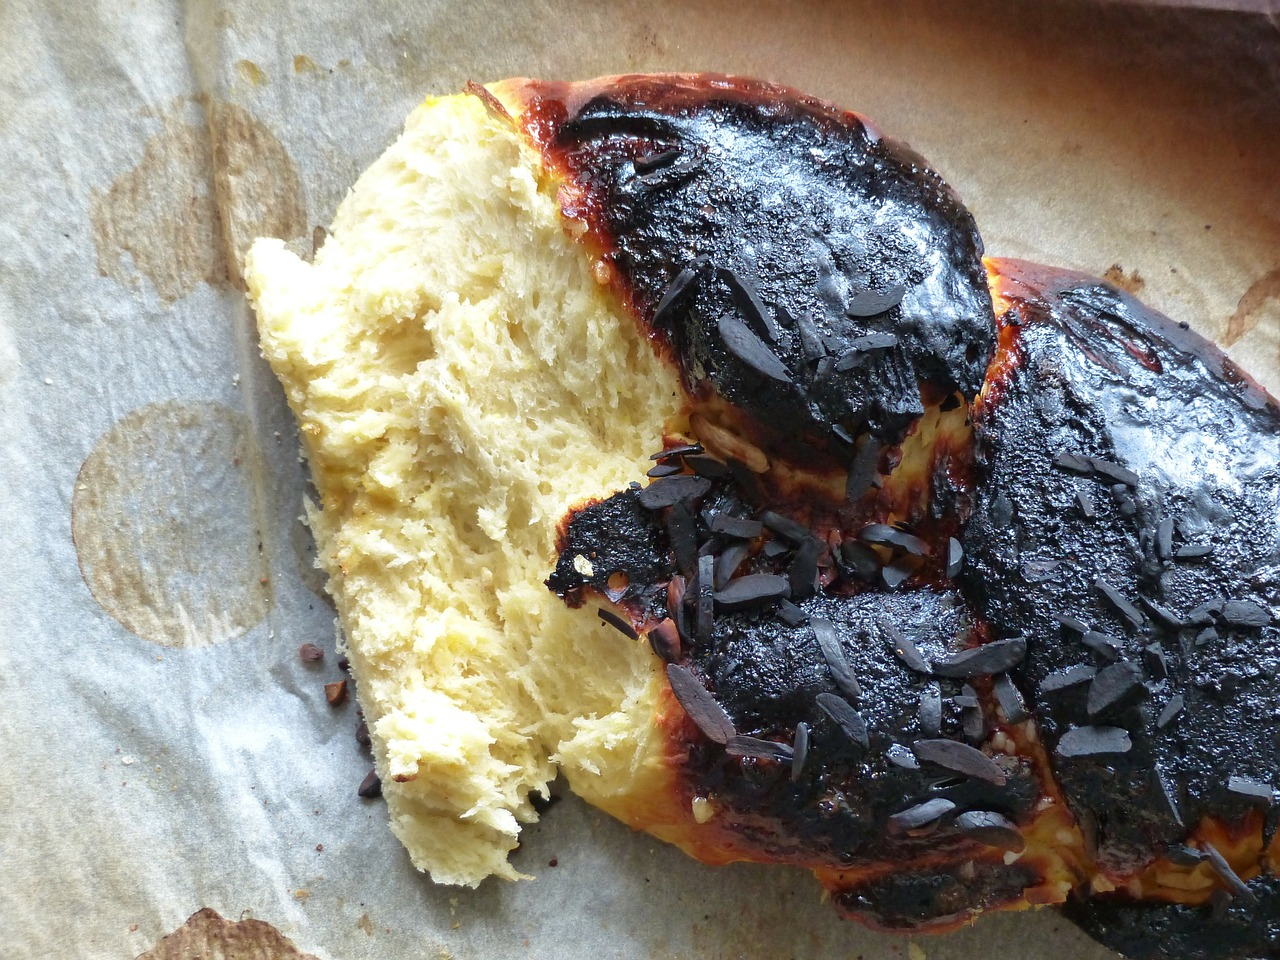 Burned Biscuits - Author Unknown